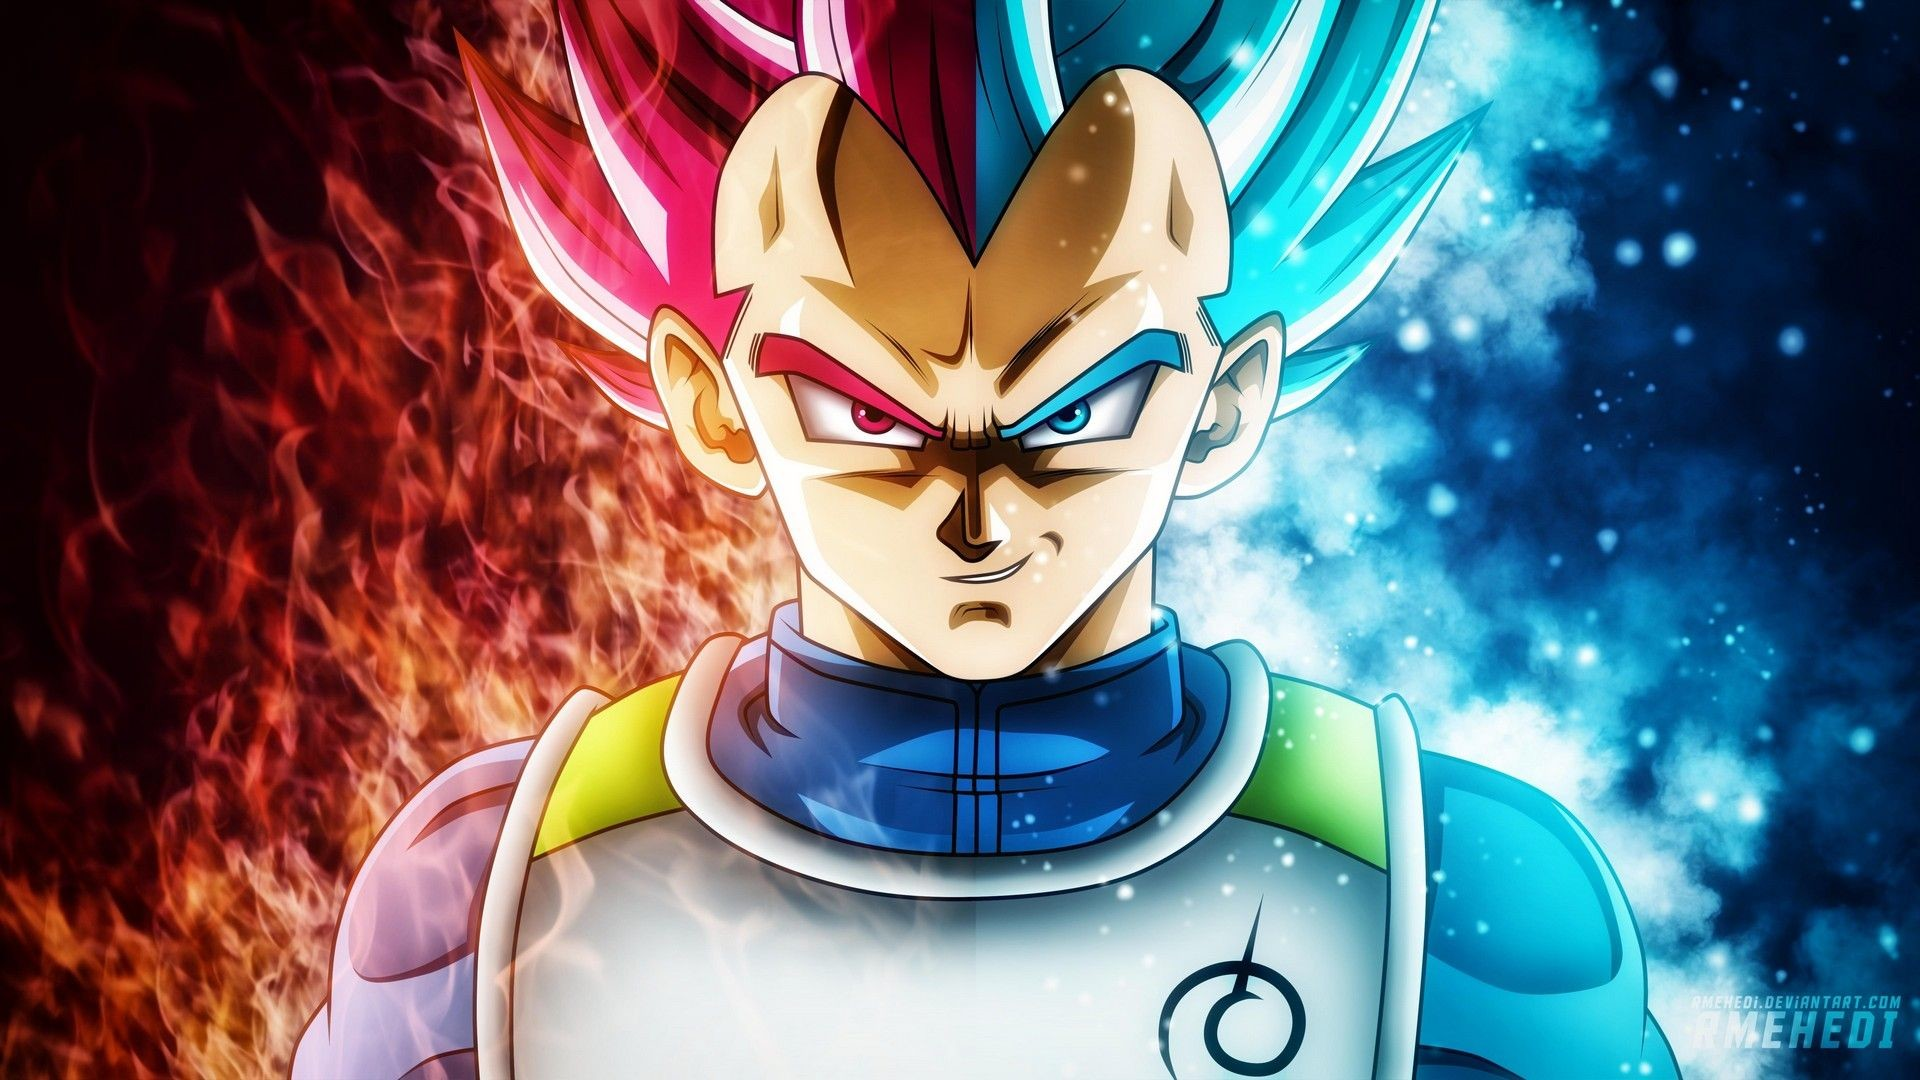 Majin Vegeta Wallpaper Hd Posted By Christopher Tremblay